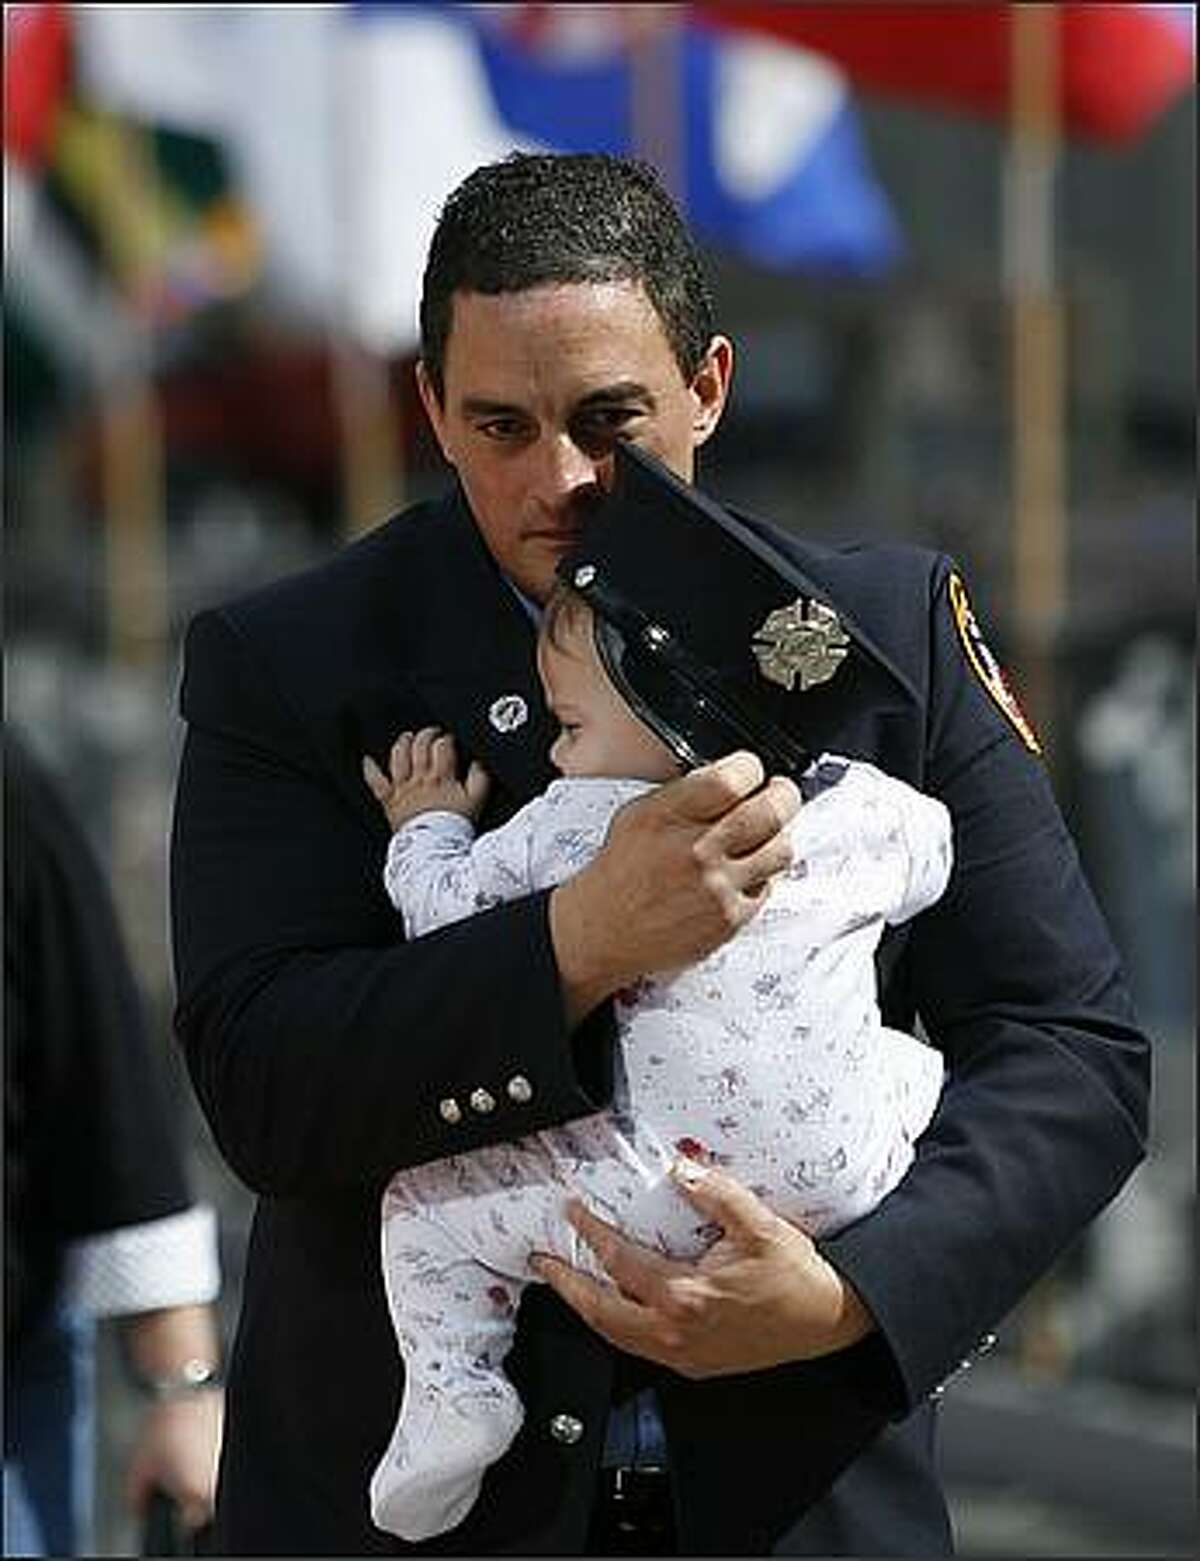 A firefighter holds a child as he walks from the World Trade Center after paying their respects during the seventh annual 9/11 commemoration ceremony held at Ground Zero September 11, 2008 in New York City. Family and friends of the victims, heads of government and others gathered at the annual ceremony to remember the attacks that killed more than 2,700 people with the destruction of the World Trade Center on September 11, 2001. (Photo by Shannon Stapleton-Pool/Getty Images)